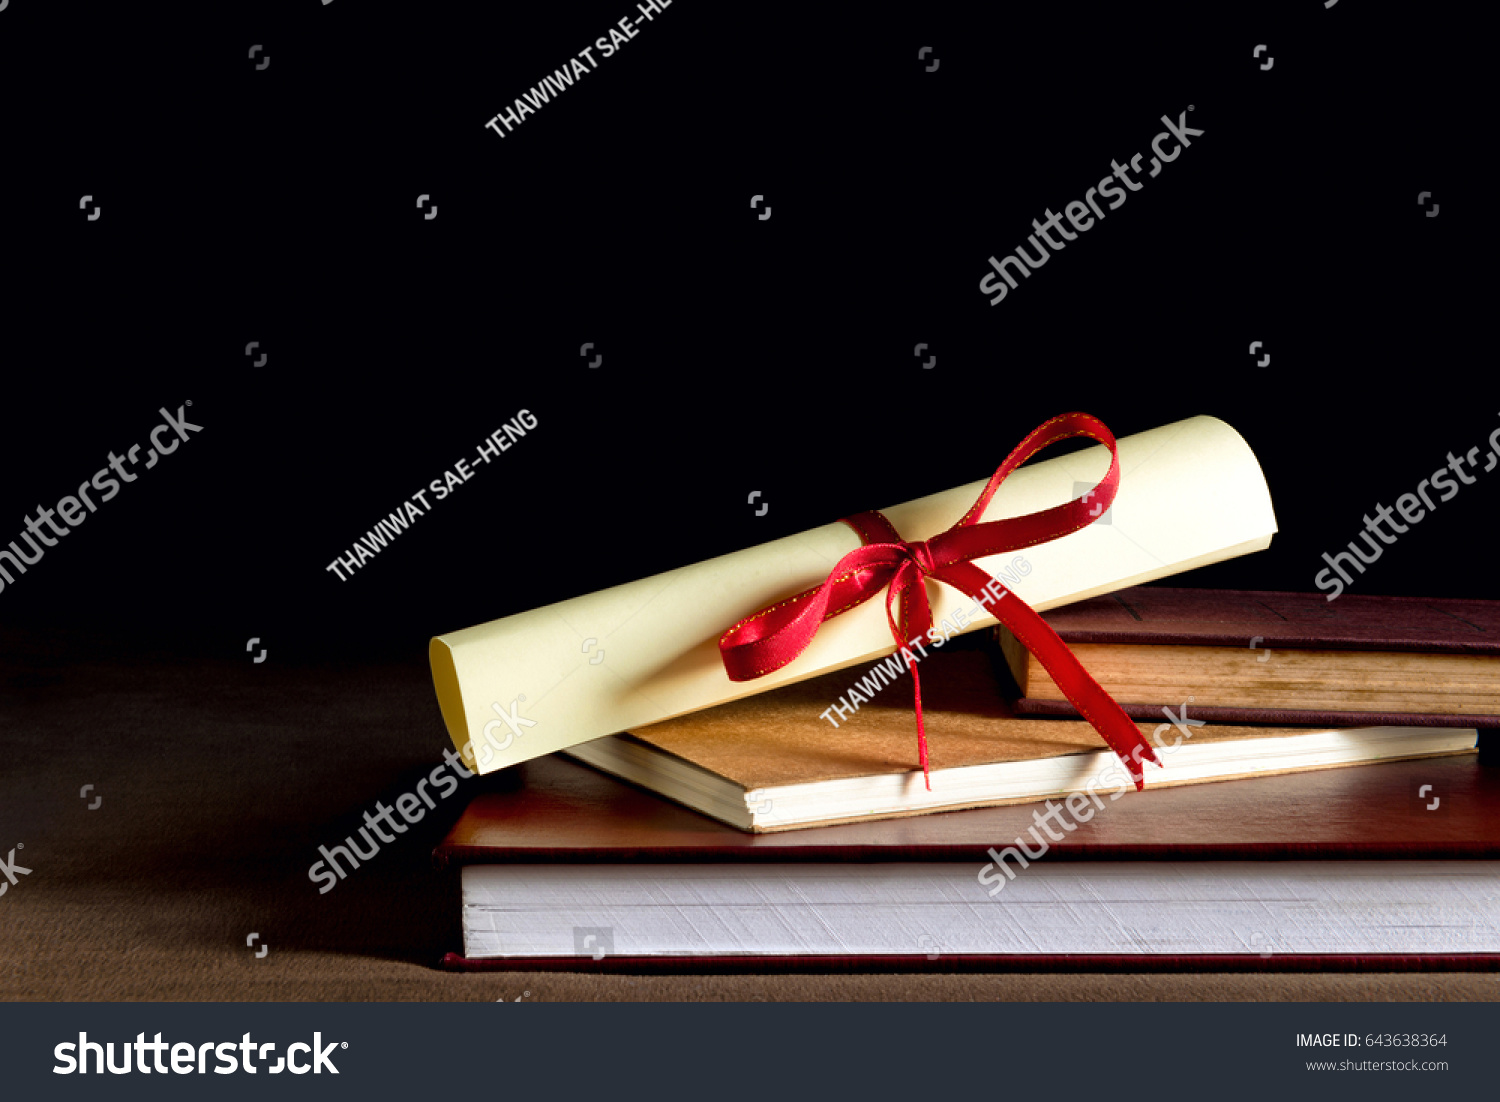 Scroll of certificate on top of the books with copy space , Back background #643638364